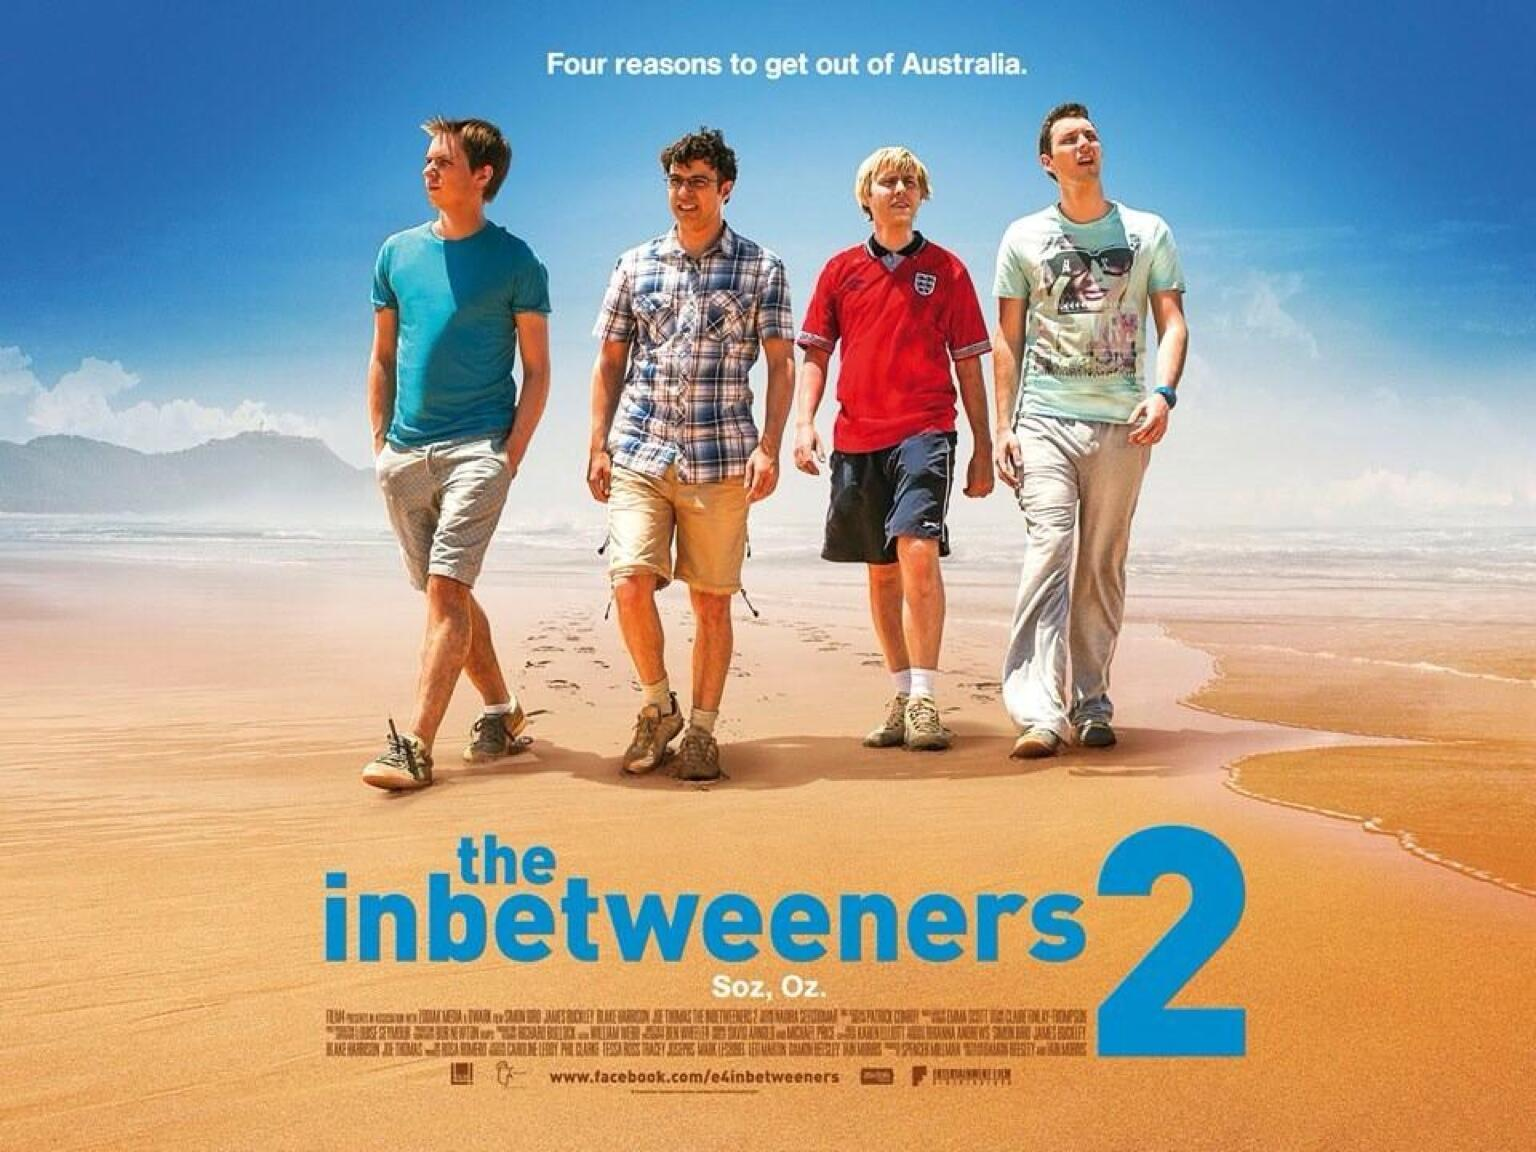 RT @James_Buckley: Inbetweeners 2 Poster guys! #Inbetweeners2 Please RT http://t.co/s0TwJiksBN